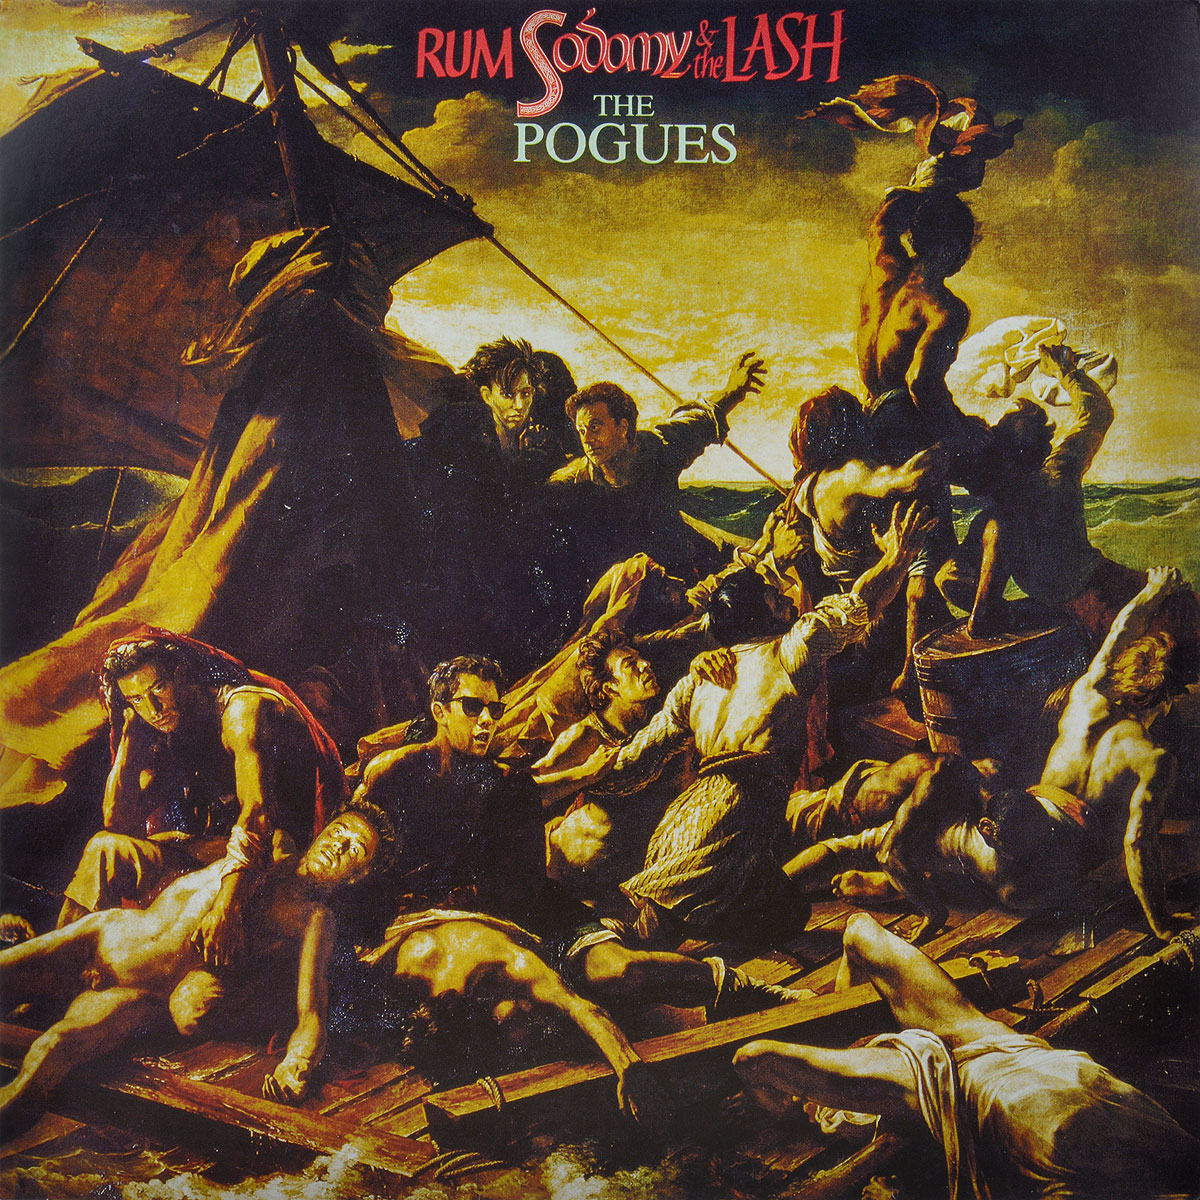 the pogues peace and love lp The Pogues. Rum Sodomy & The Lash (LP)